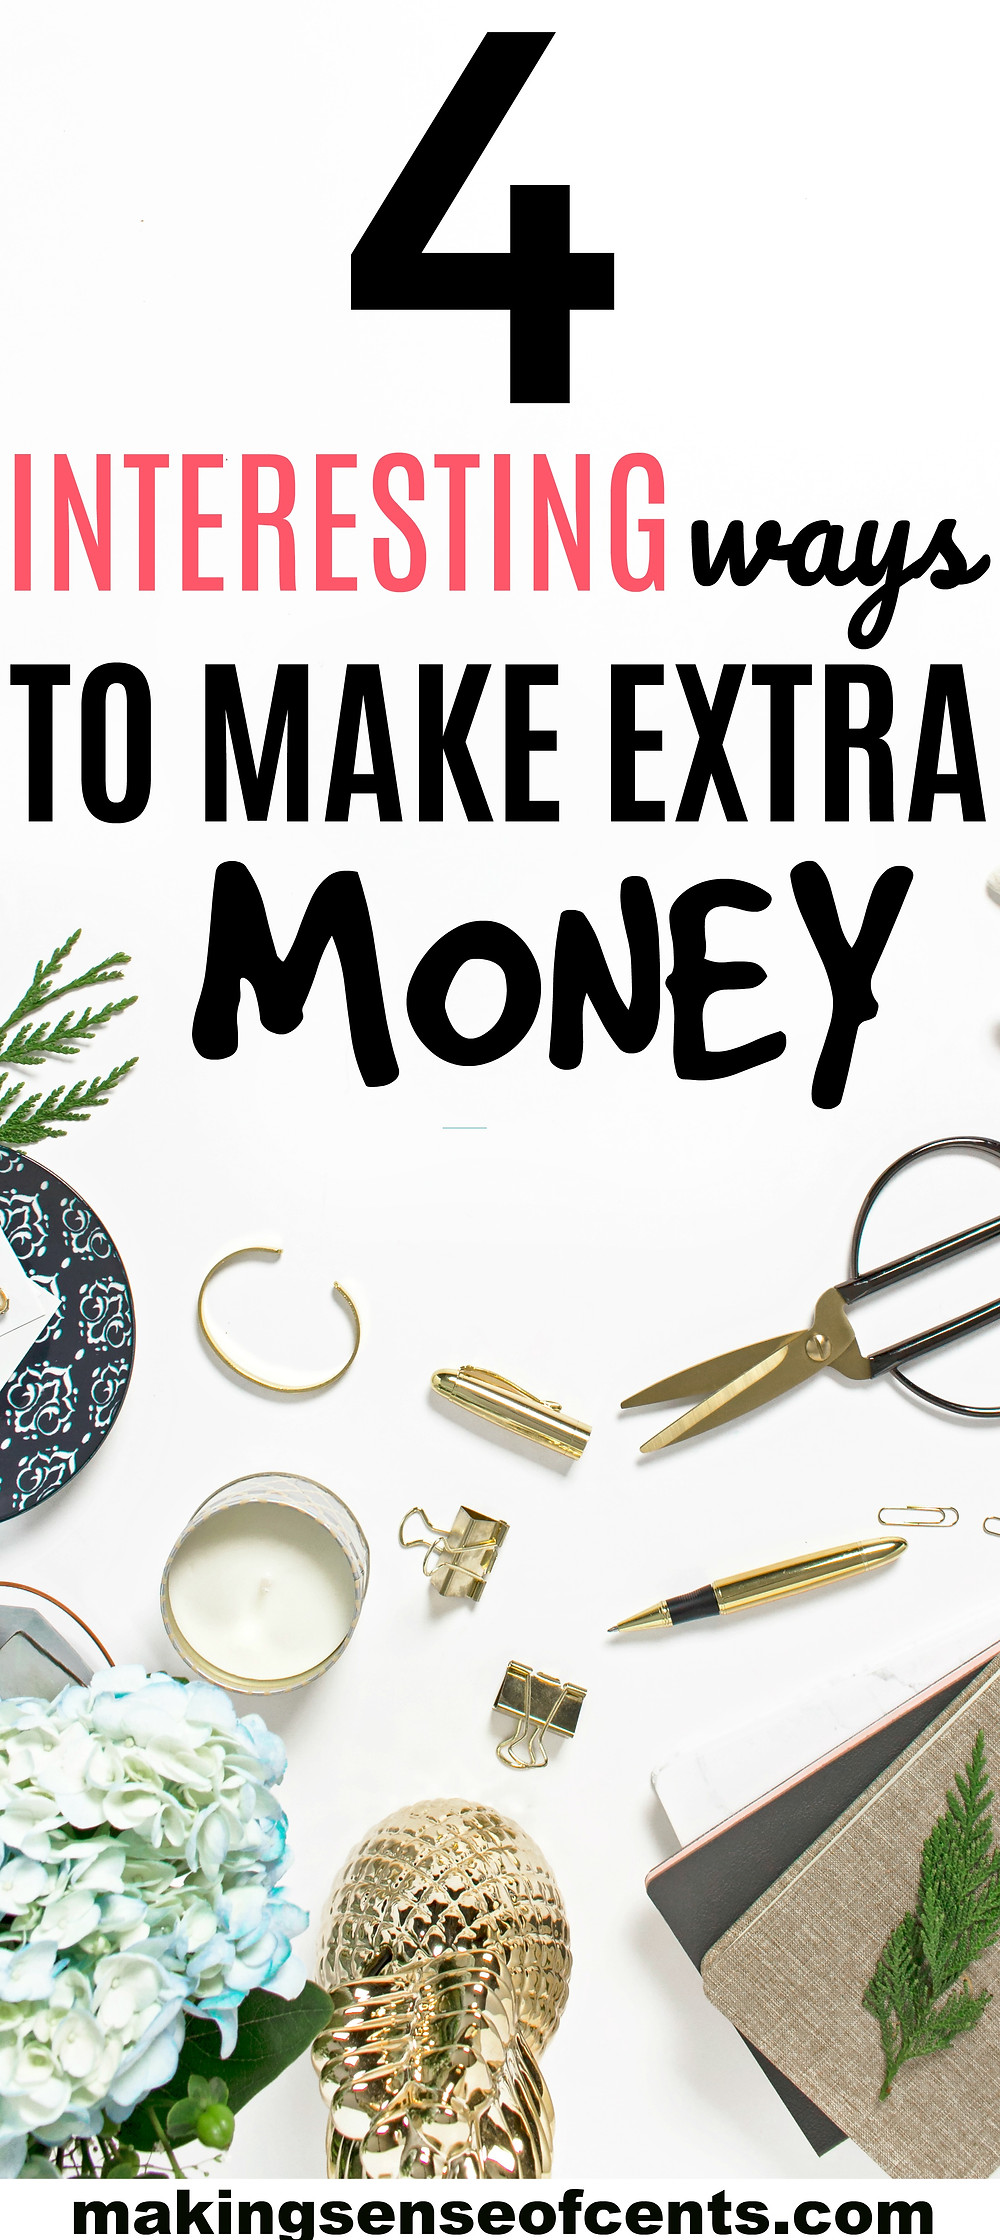 Check out this list of interesting ways to make money! #makemoney #makingmoney